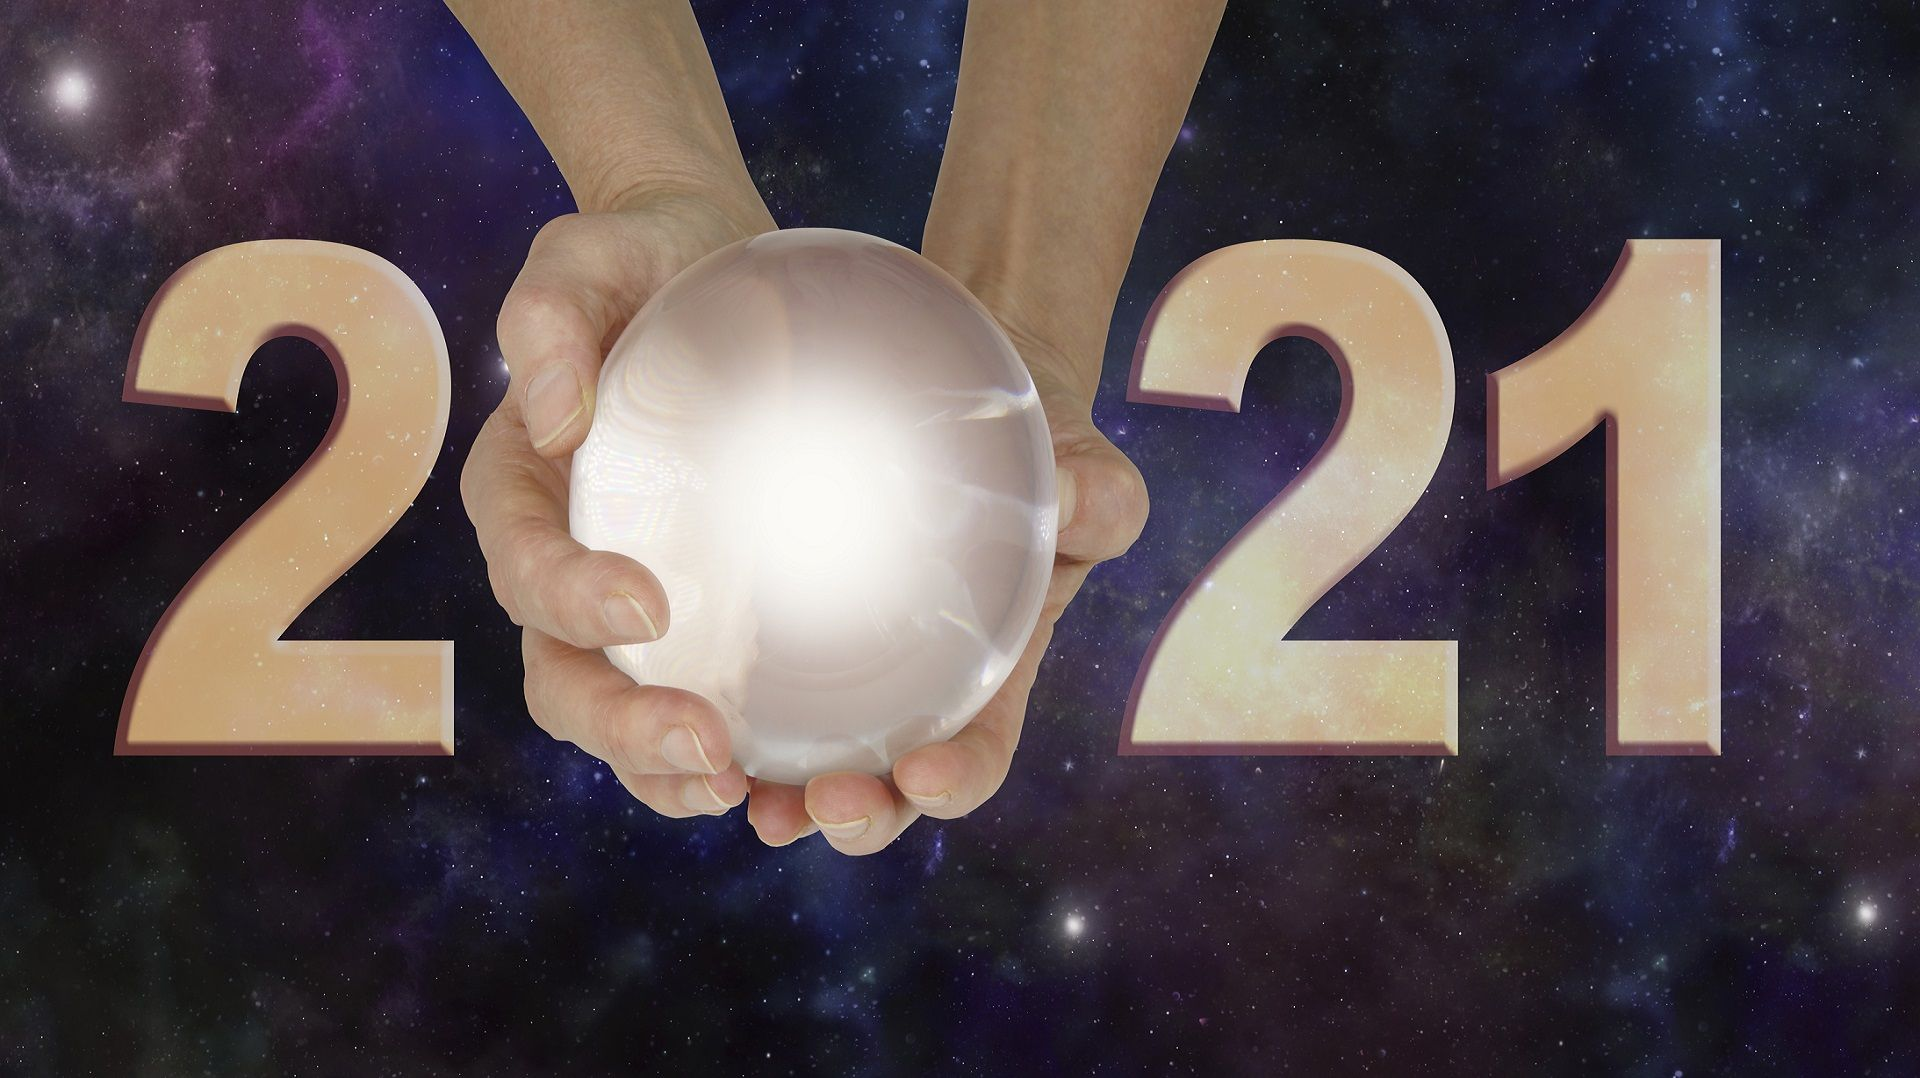 Our Annual Psychic Projections for 2021: 9 Prophecies of Change